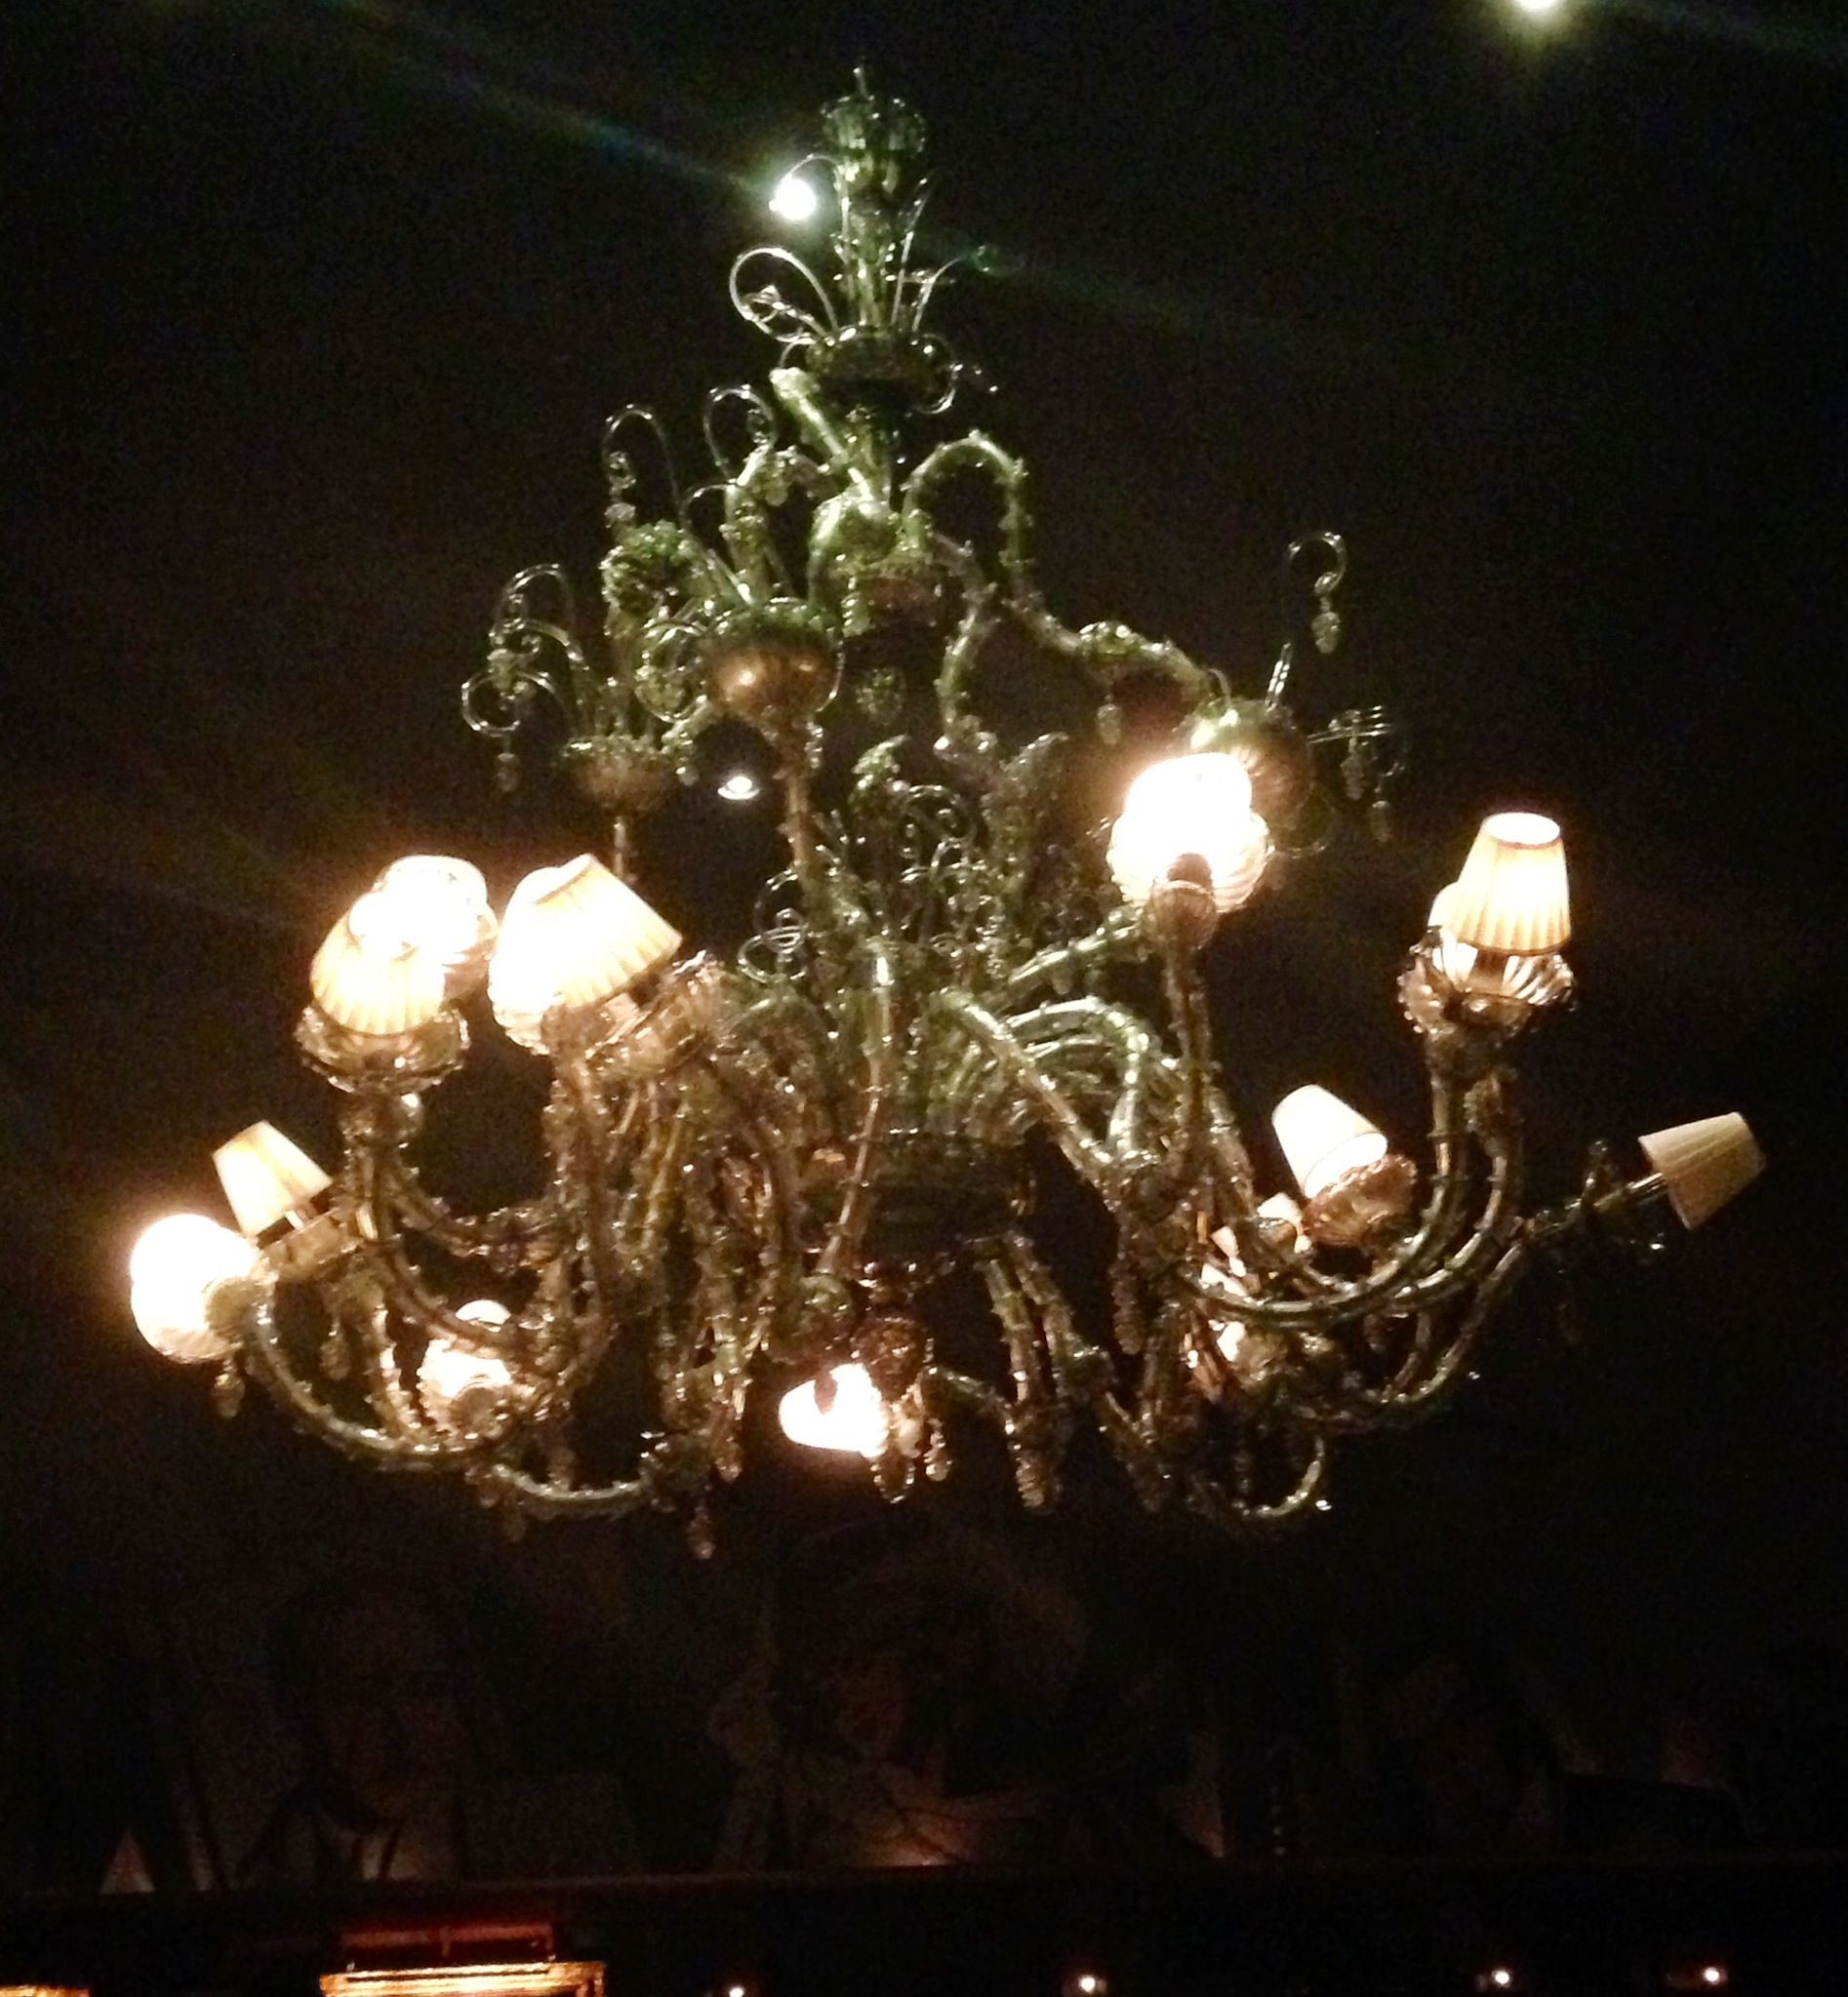 Chandelier at Nick & SAMs uptown Dallas